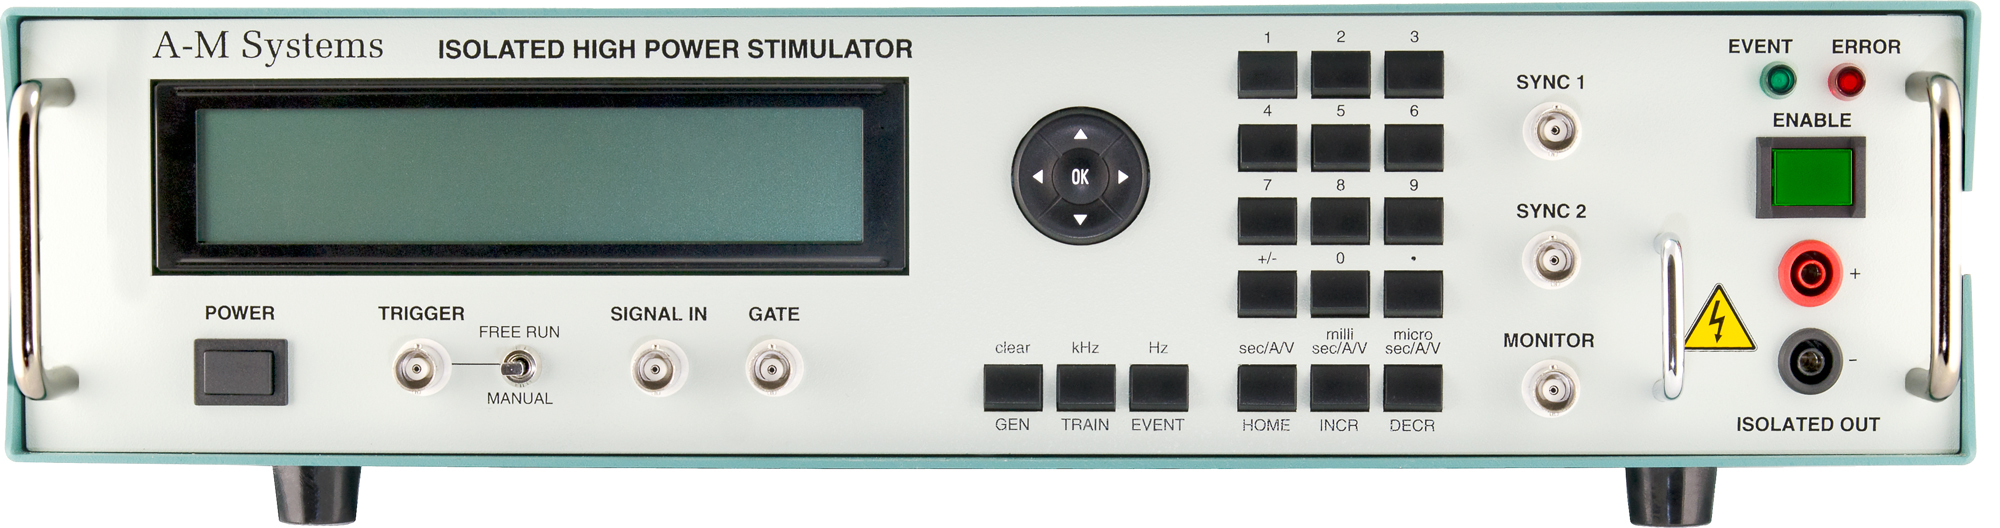 See Our New Isolated Stimulator at Neuroscience 2015